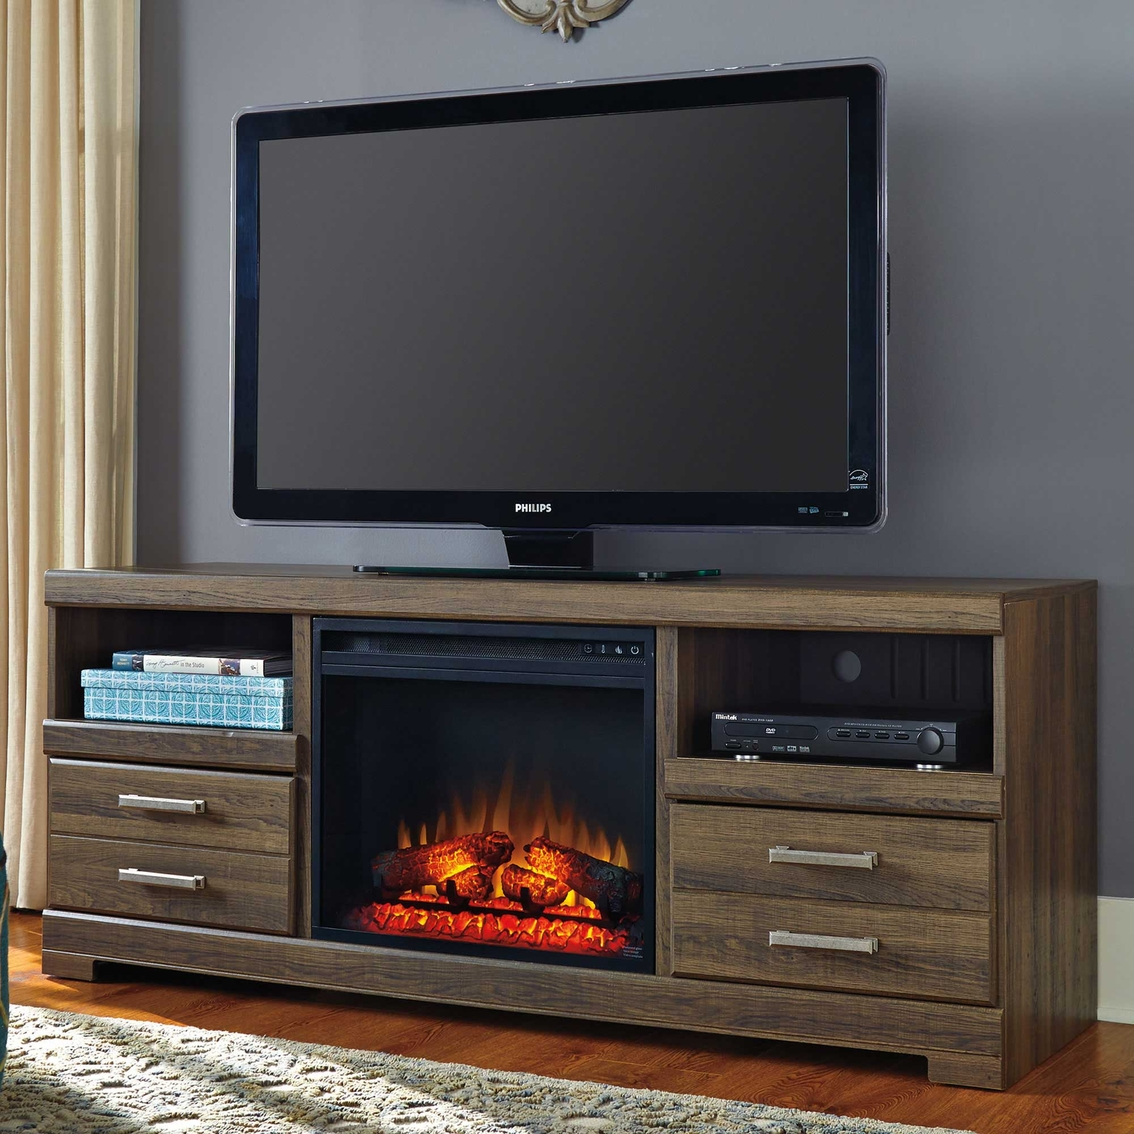 Shop Ashley Frantin TV Stand with Fireplace Insert and other name brand Media Furniture Home & Appliances at The Exchange. You